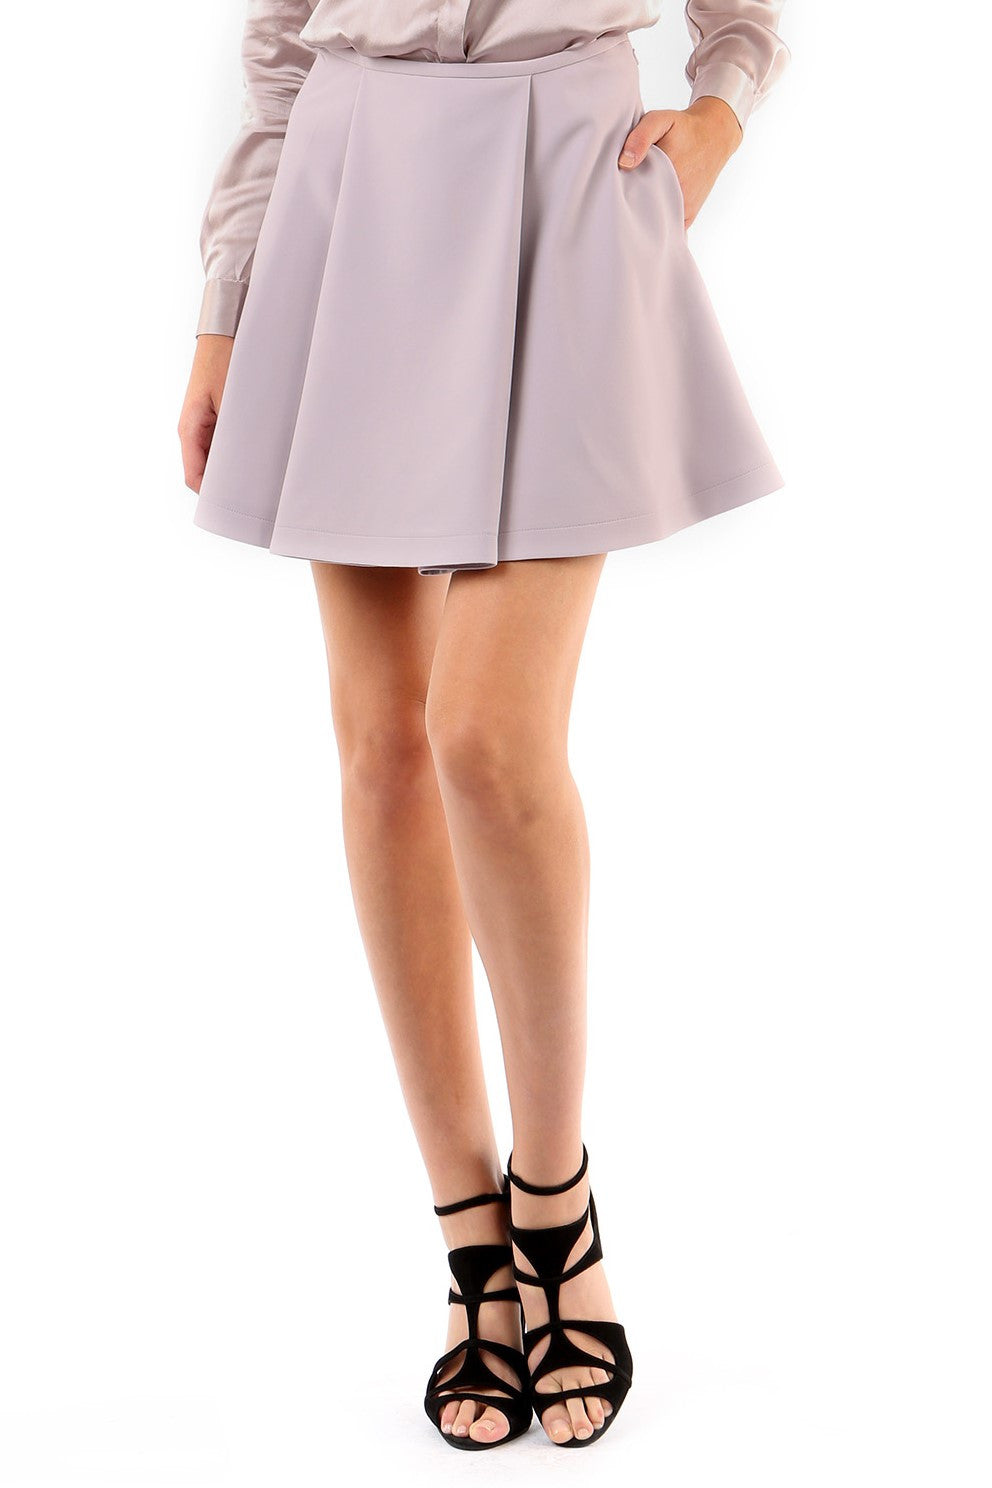 Jay Godfrey Mauve Pleated Mini Skirt - Front View